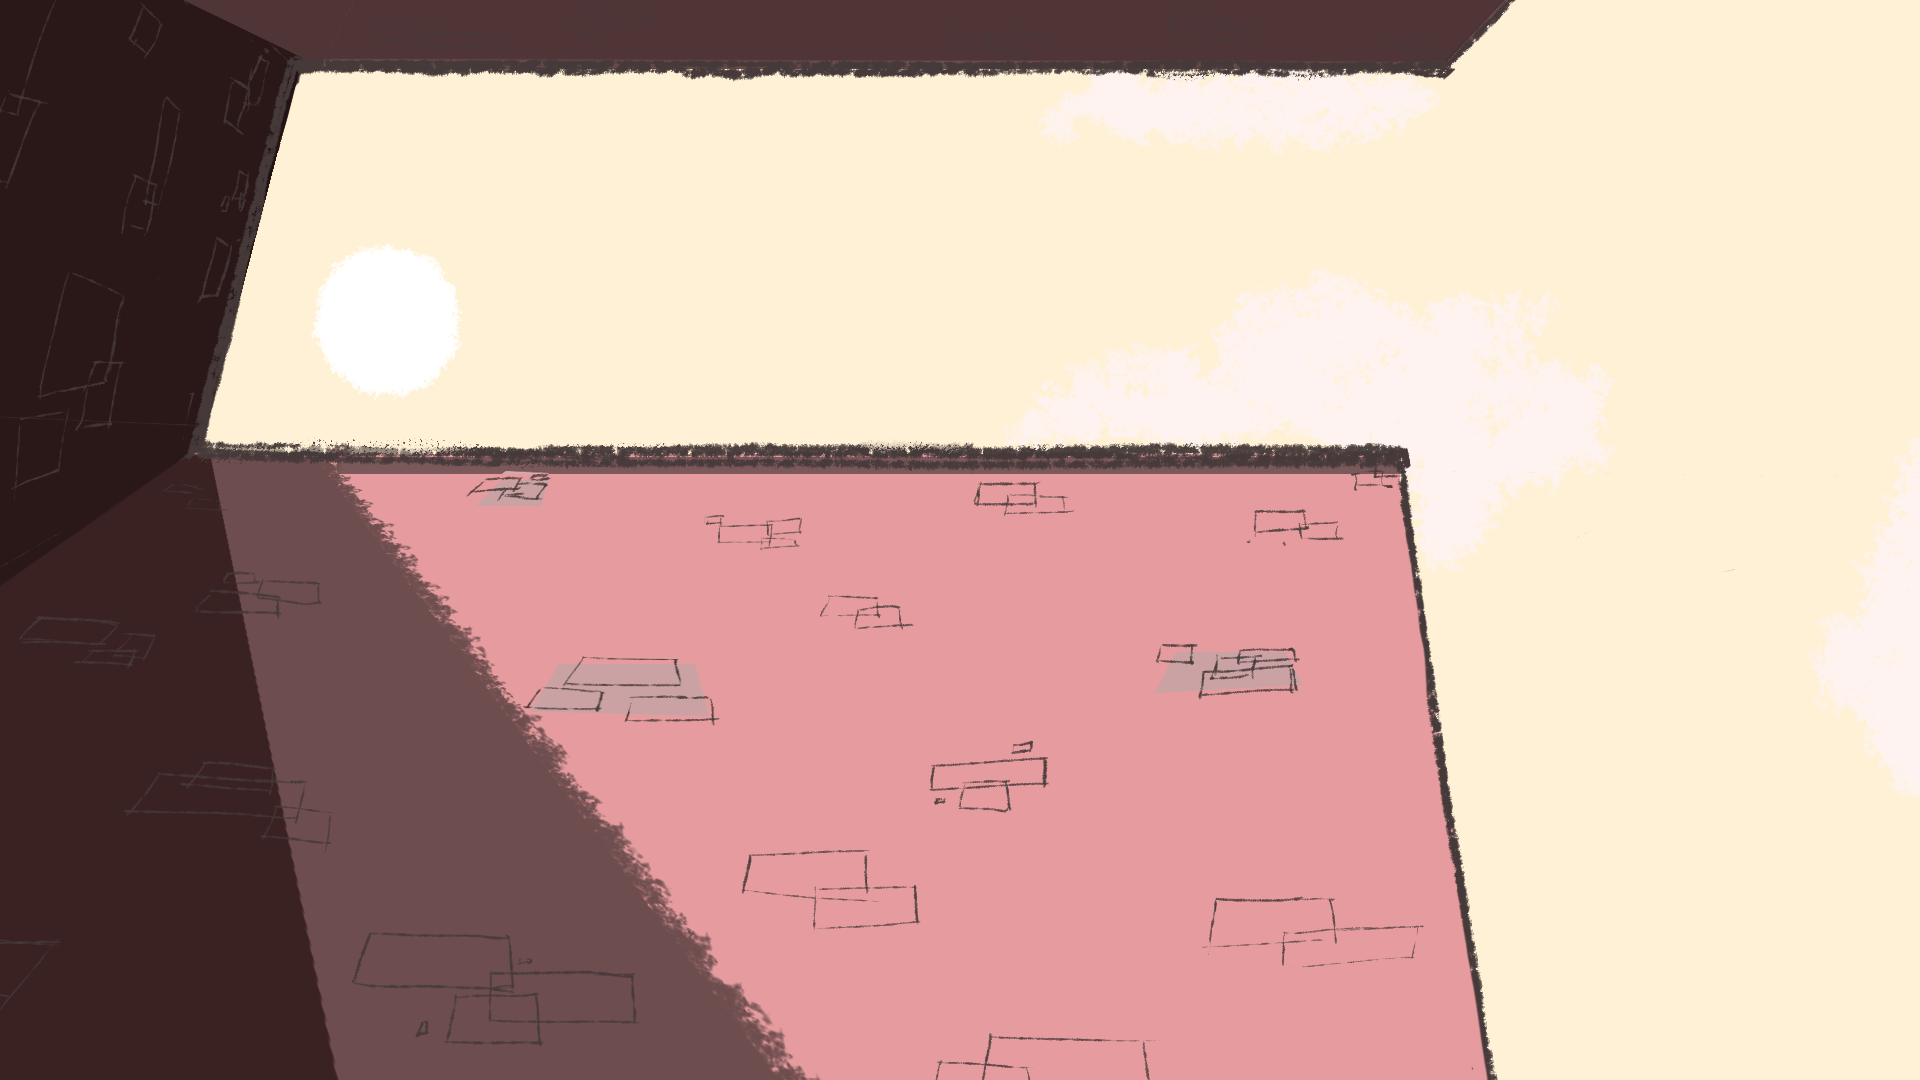 Alleylayout_2.png